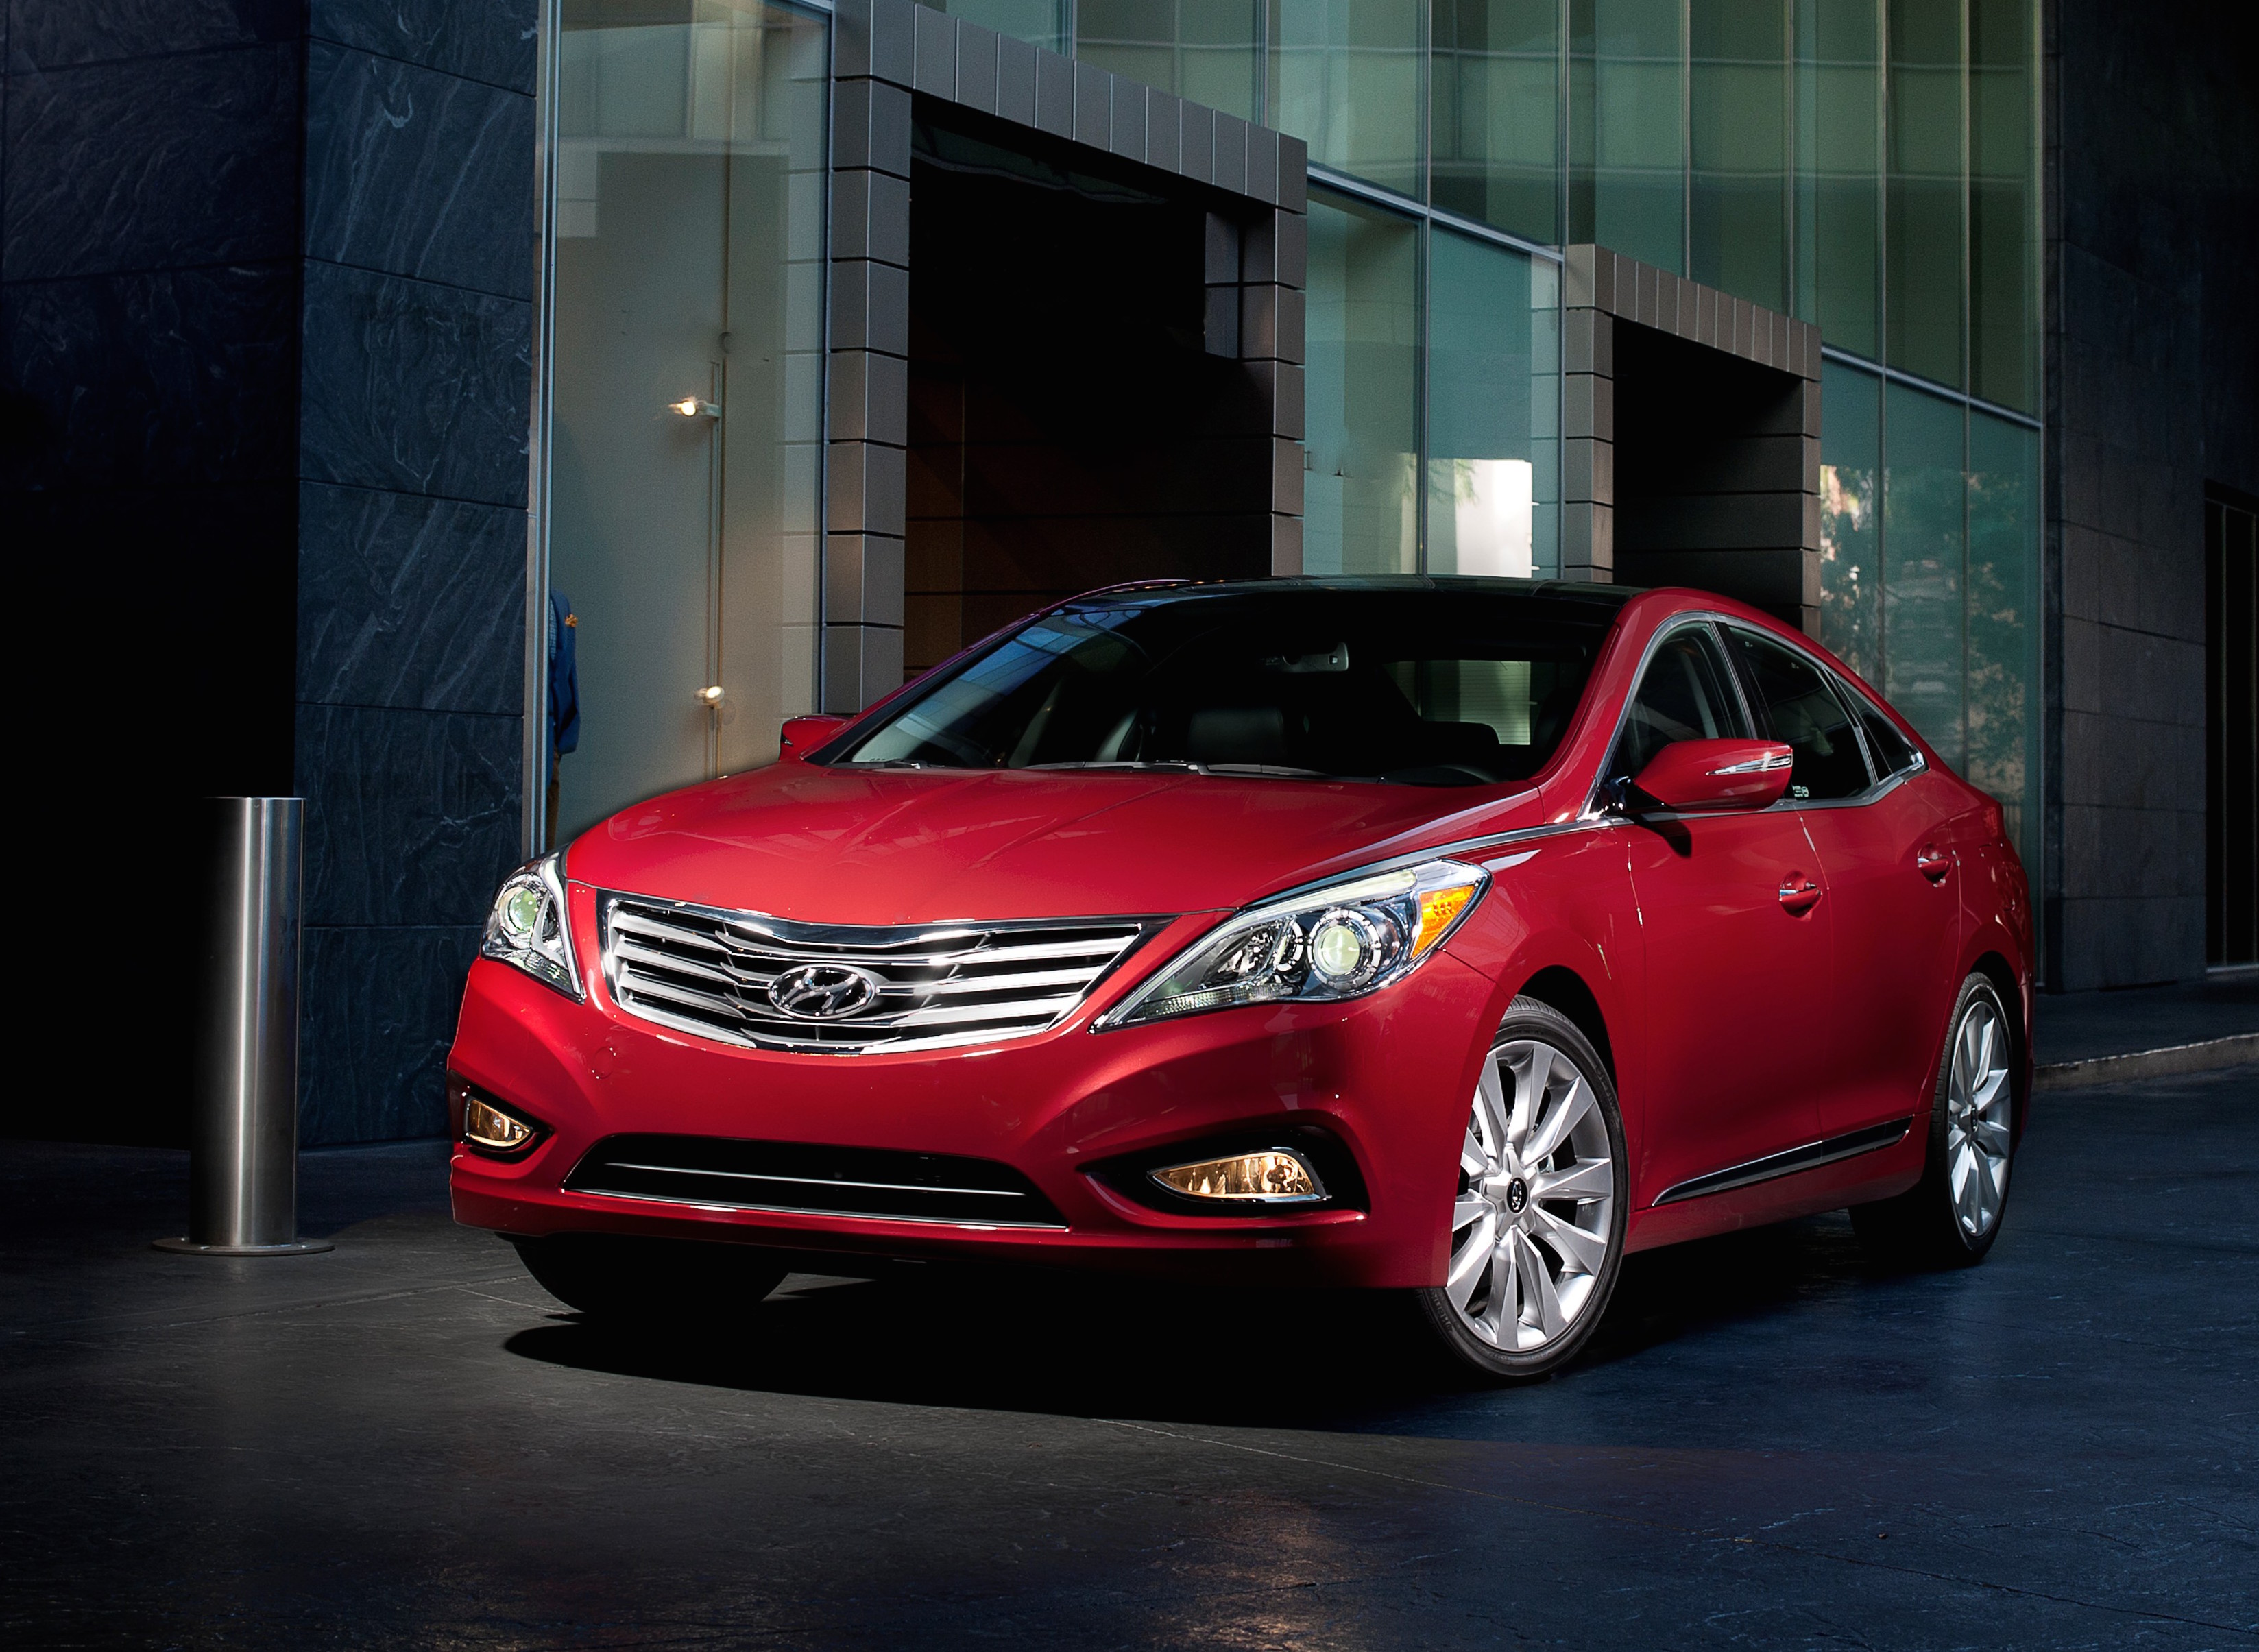 2015 Hyundai Azera Review Ratings Specs Prices and